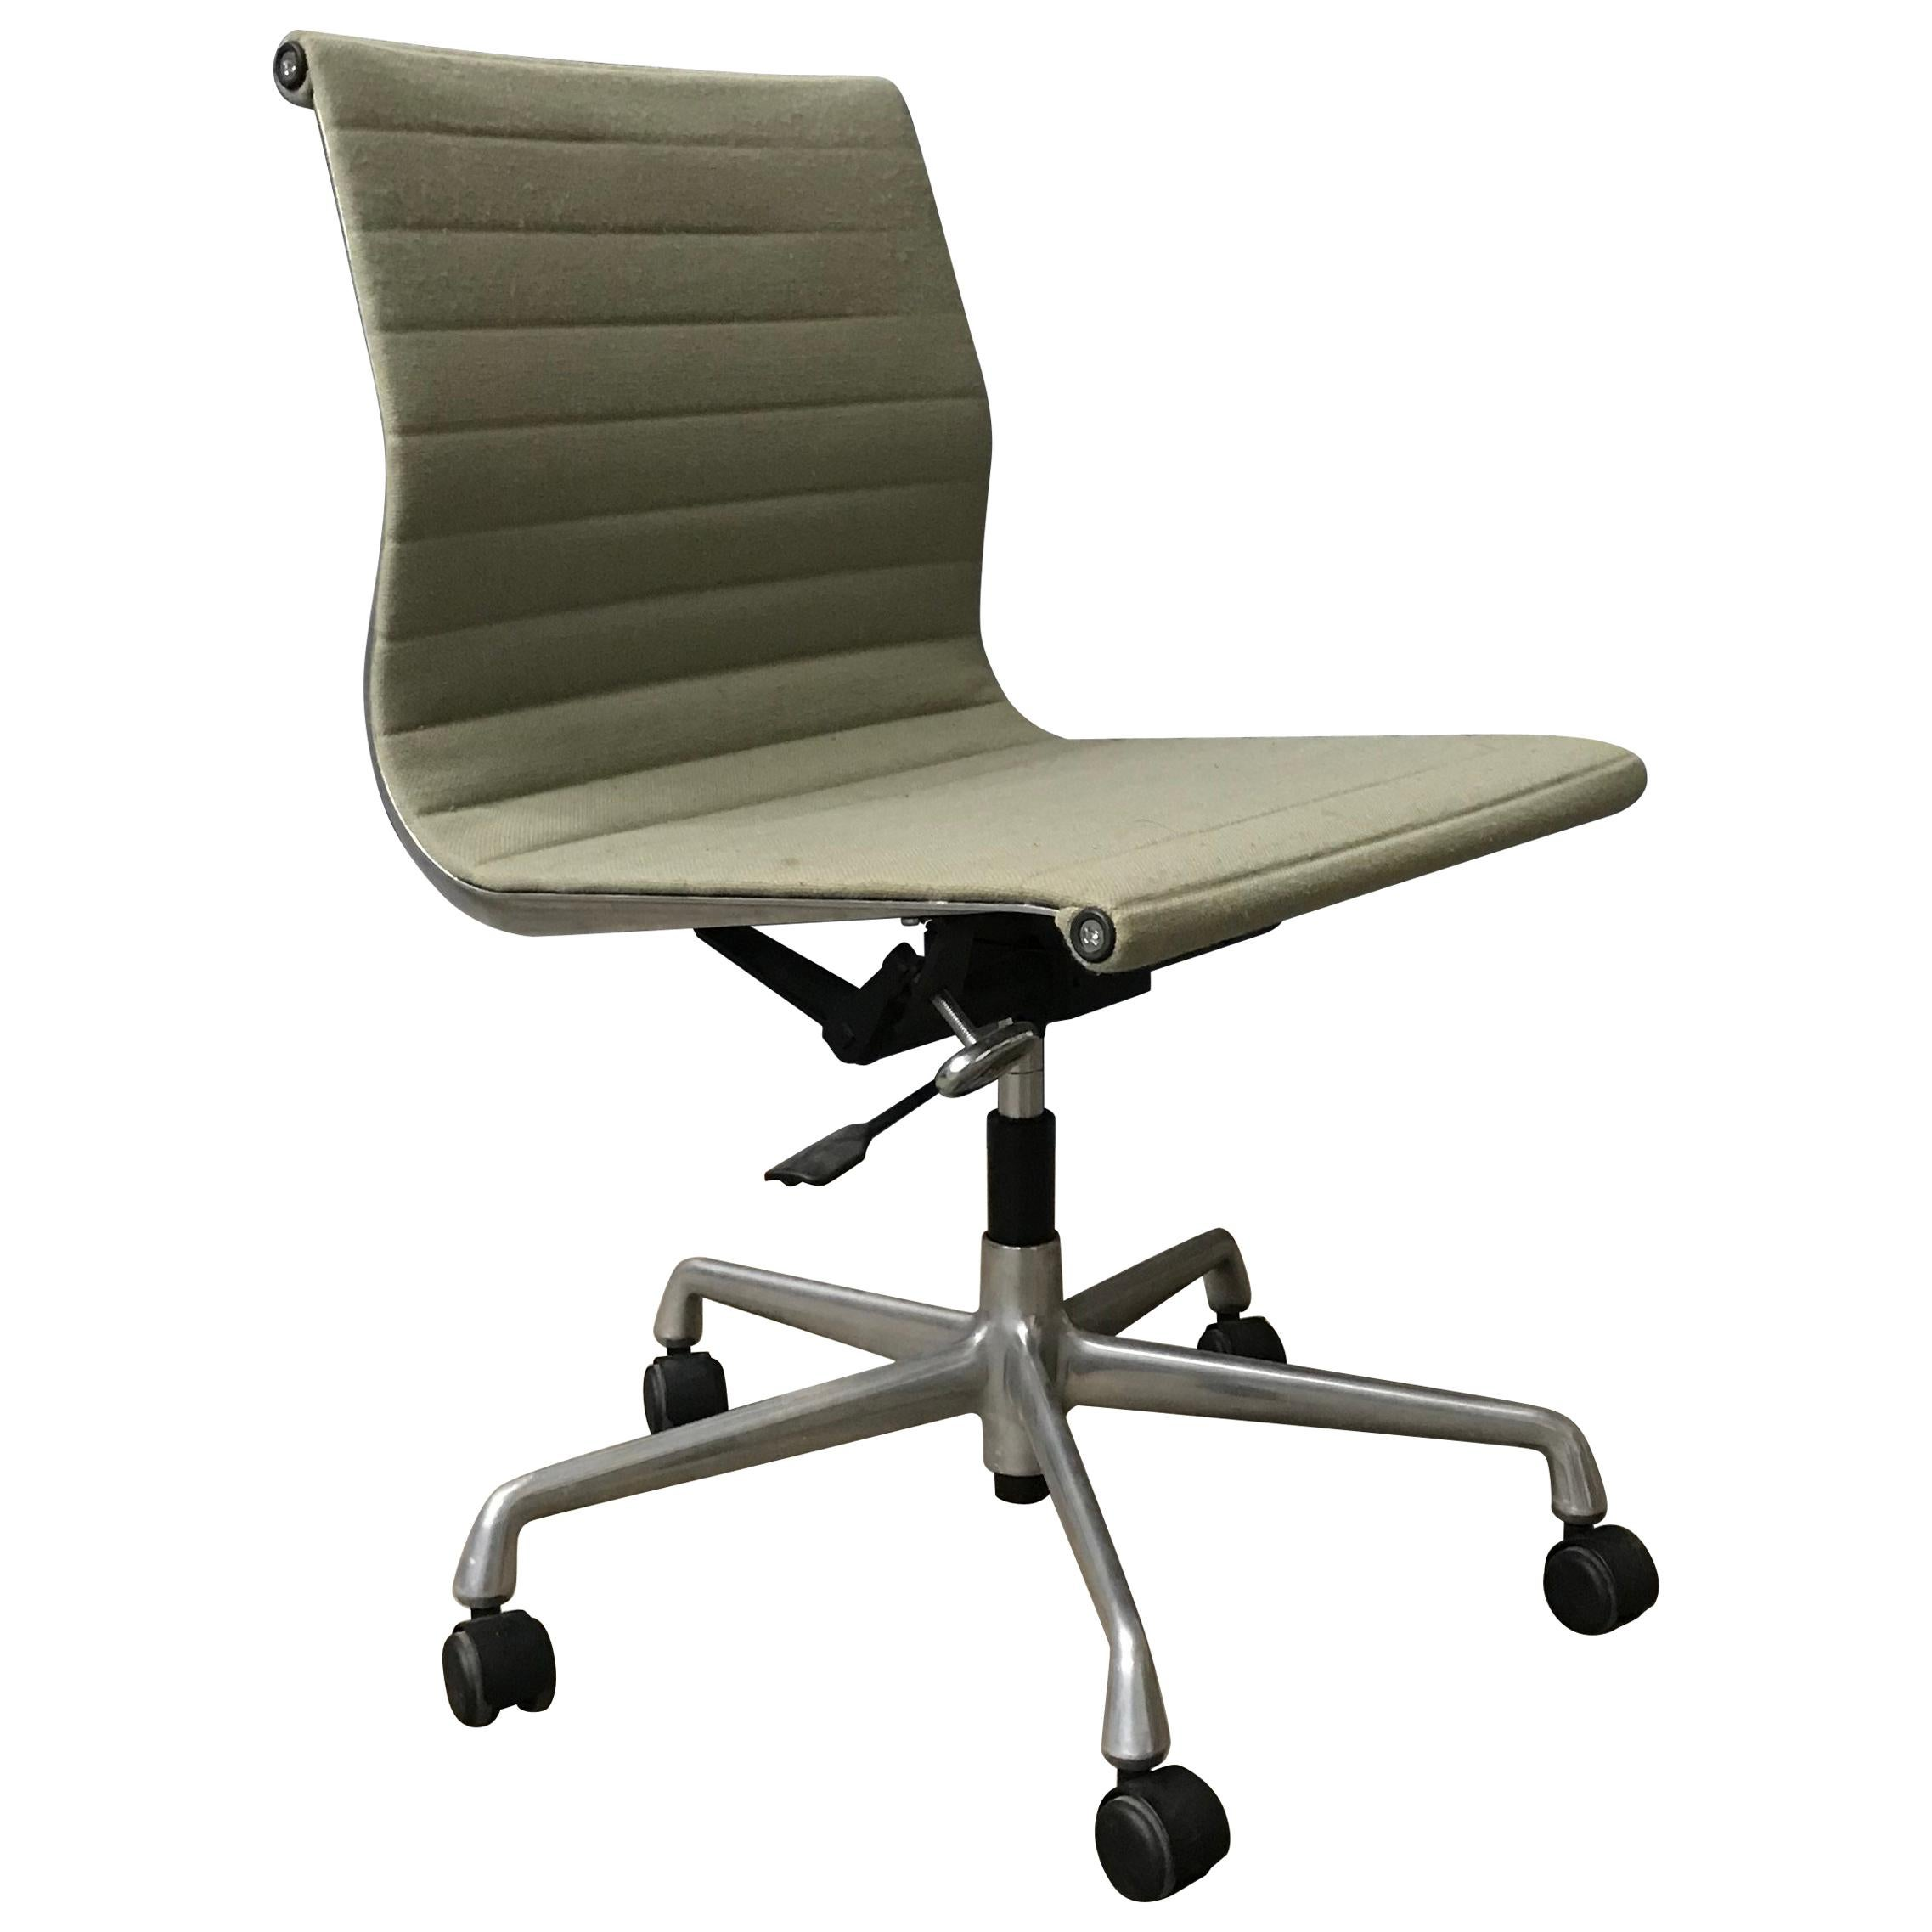 Ray And Charles Eames Mid Century Modern Vintage Aluminium Lounge Chair By Ray Charles Eames 1958